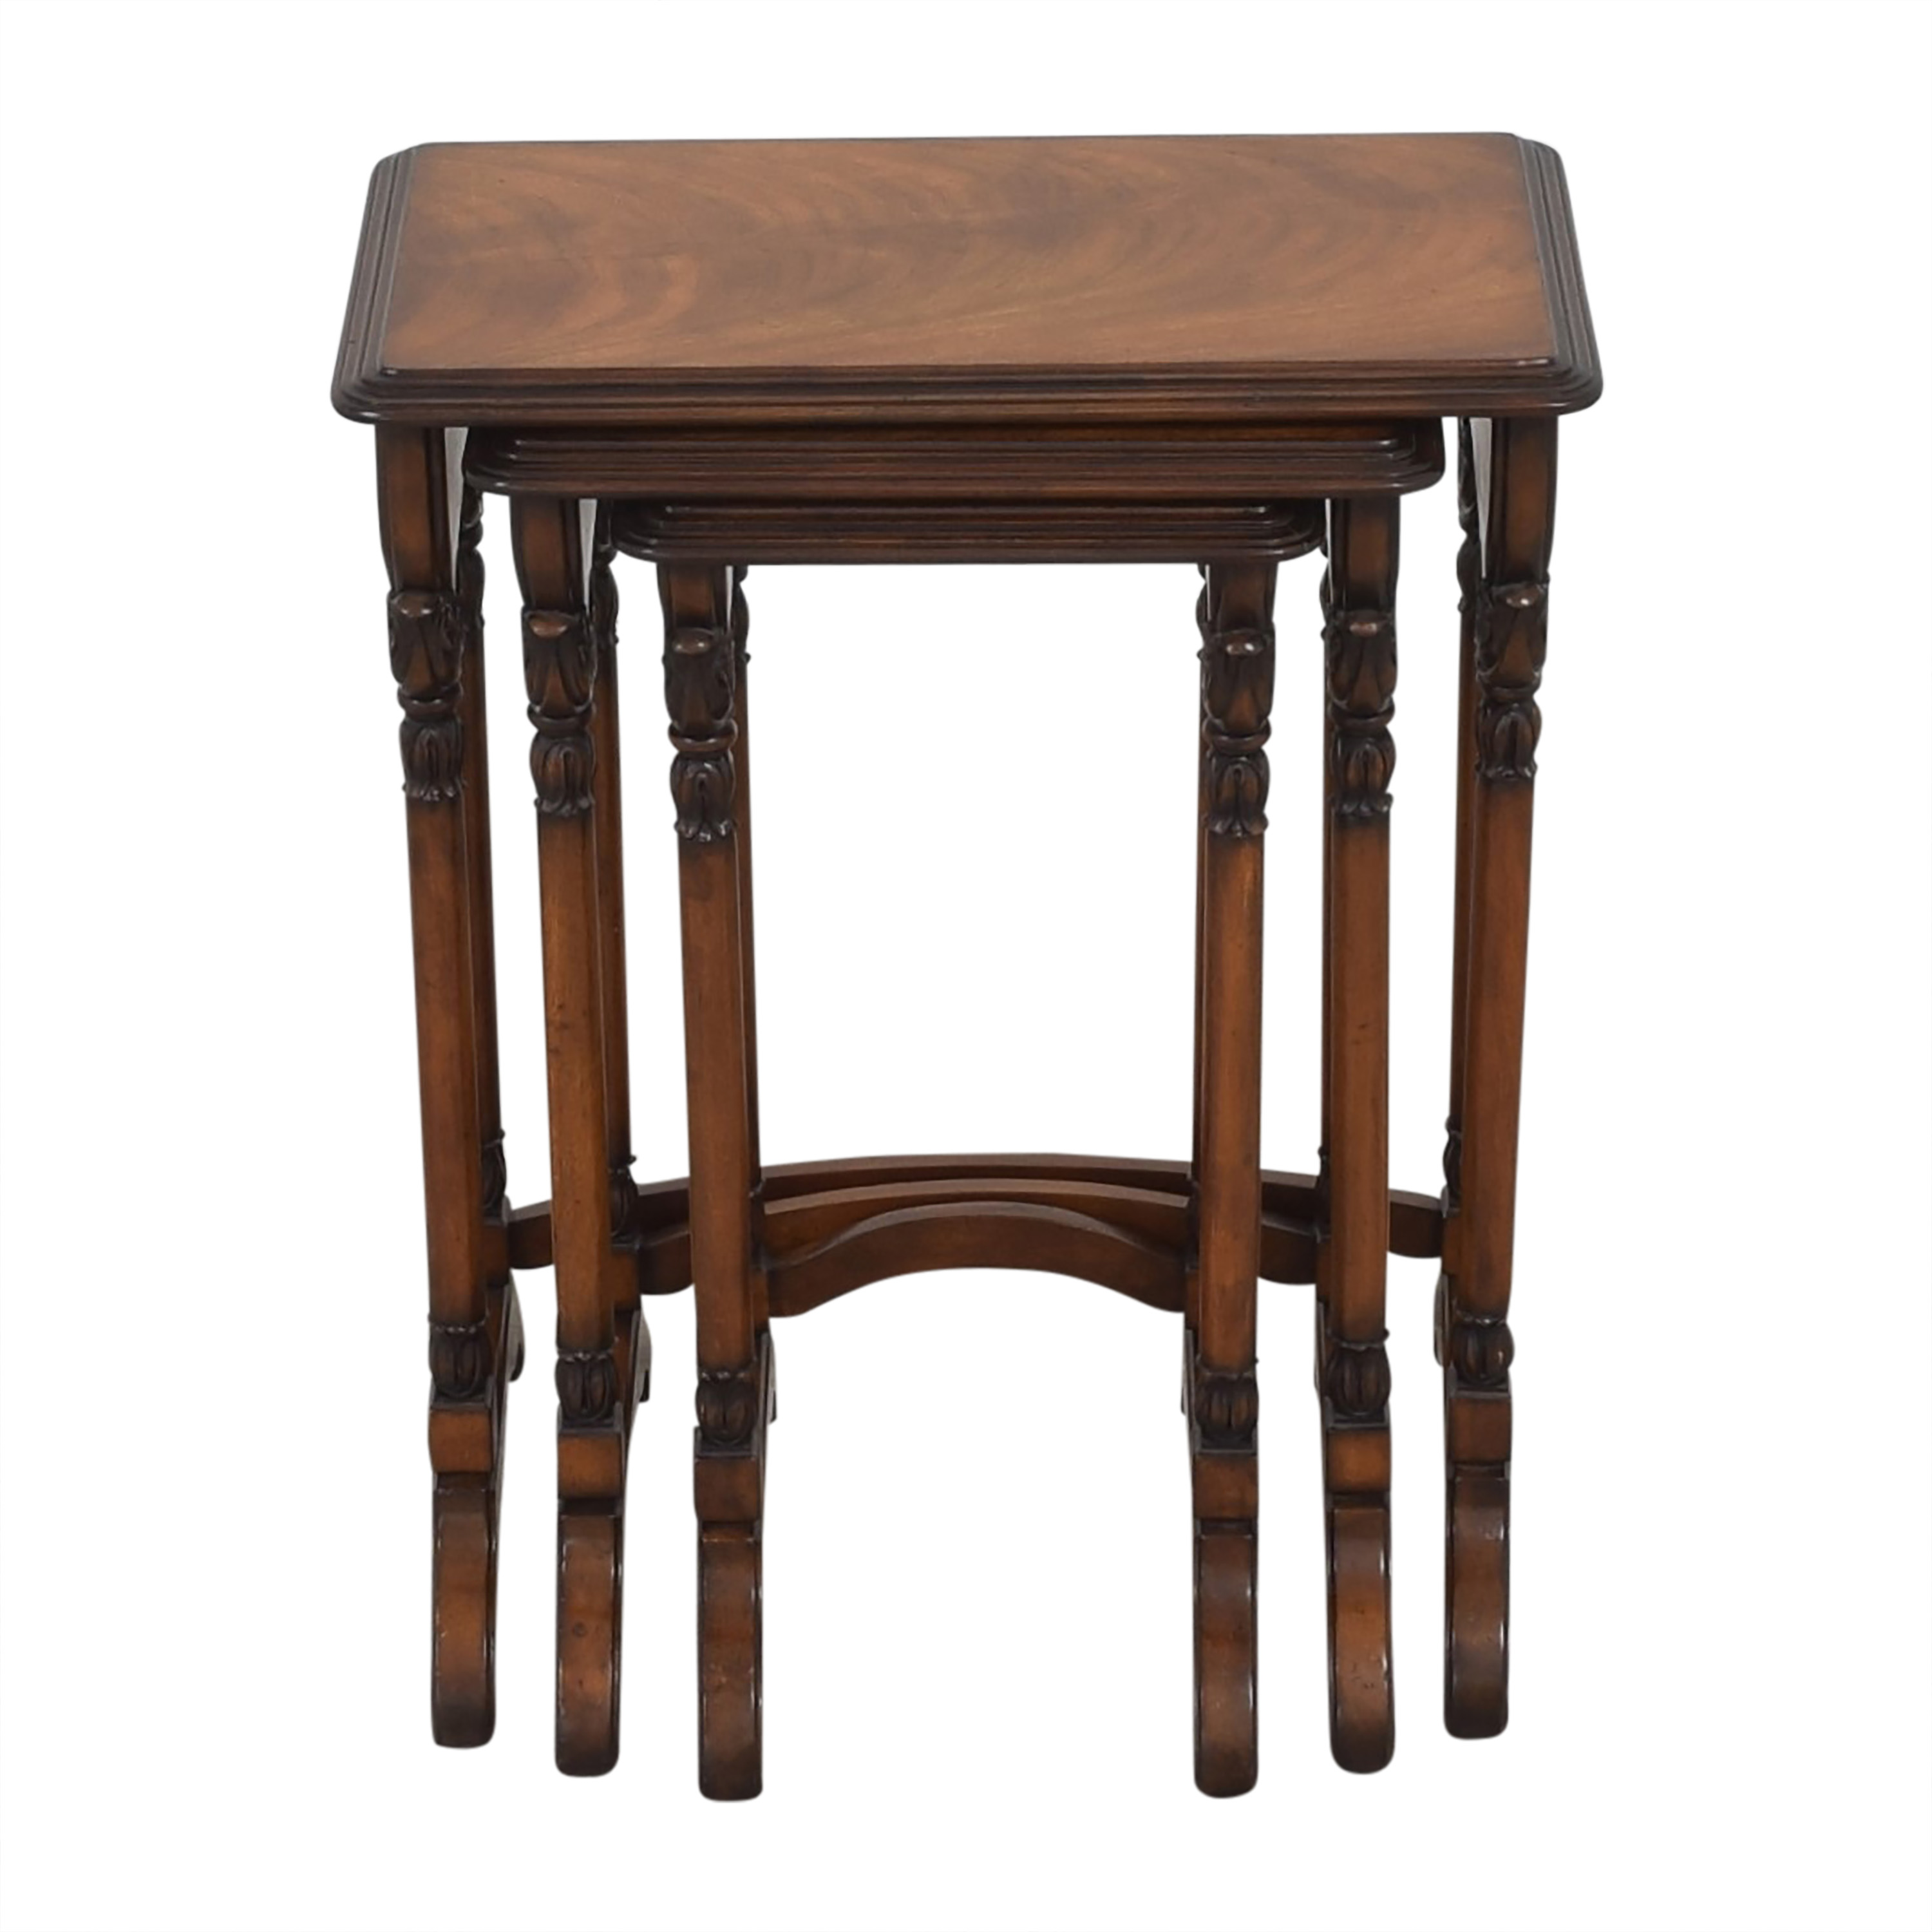 Maison 55 Country Manor Nesting End Tables sale